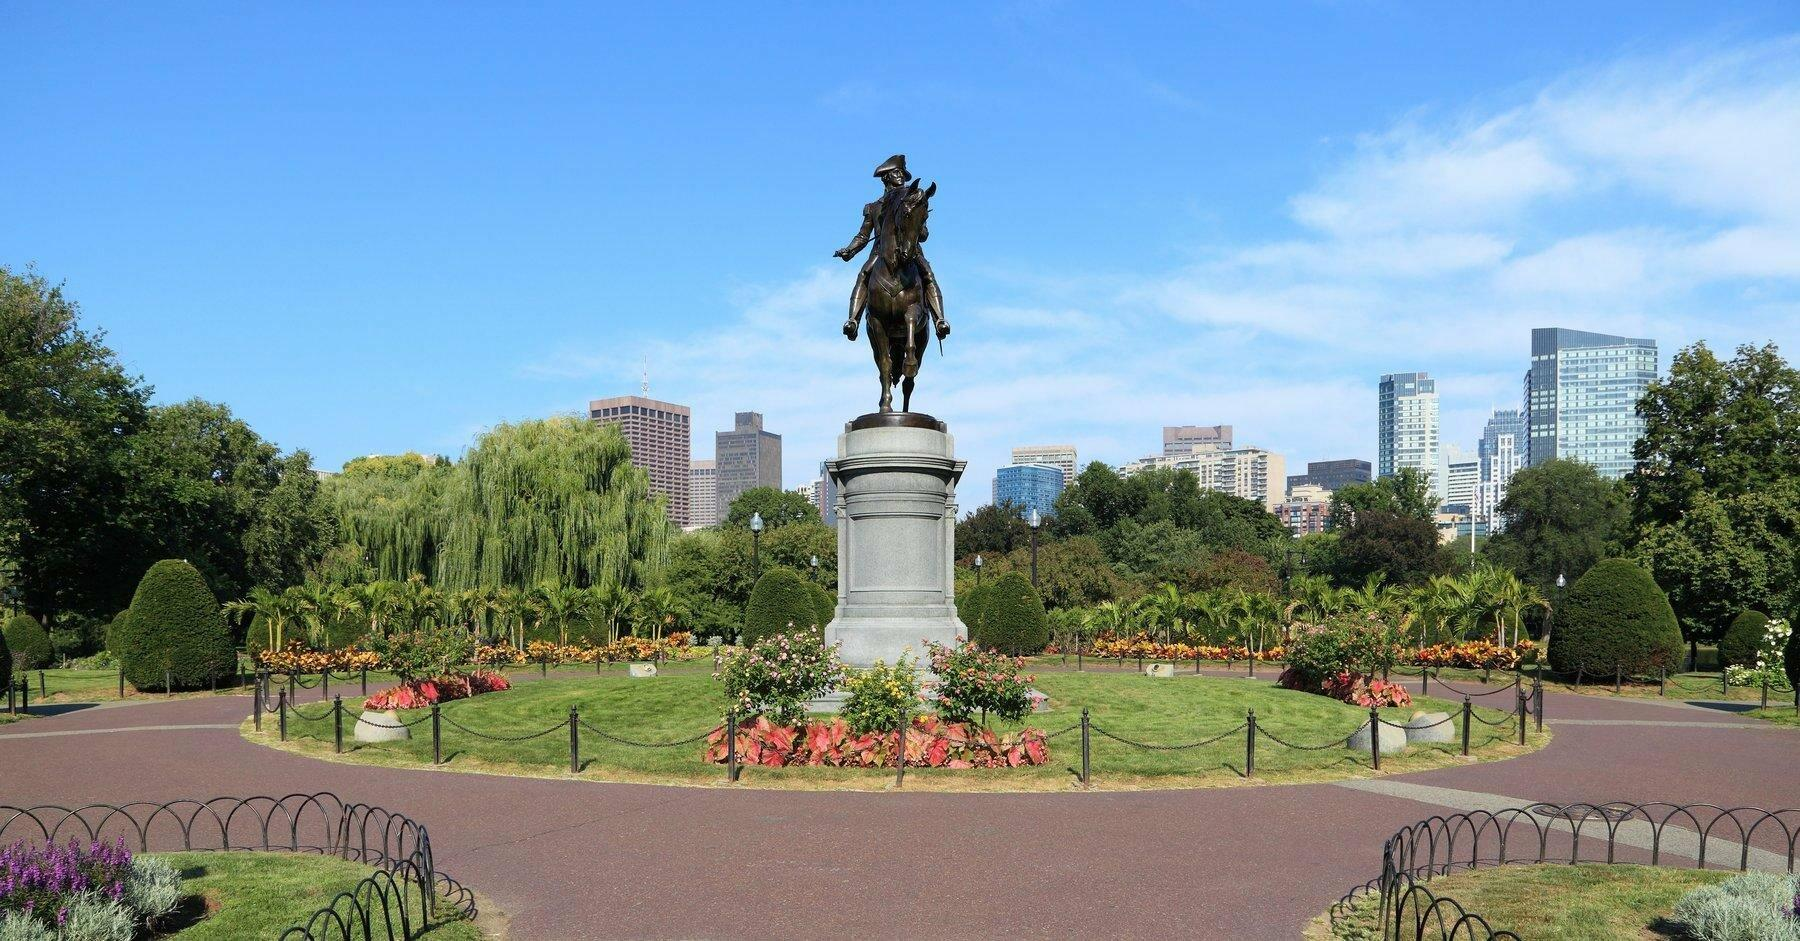 park with statue of George Washington on horse